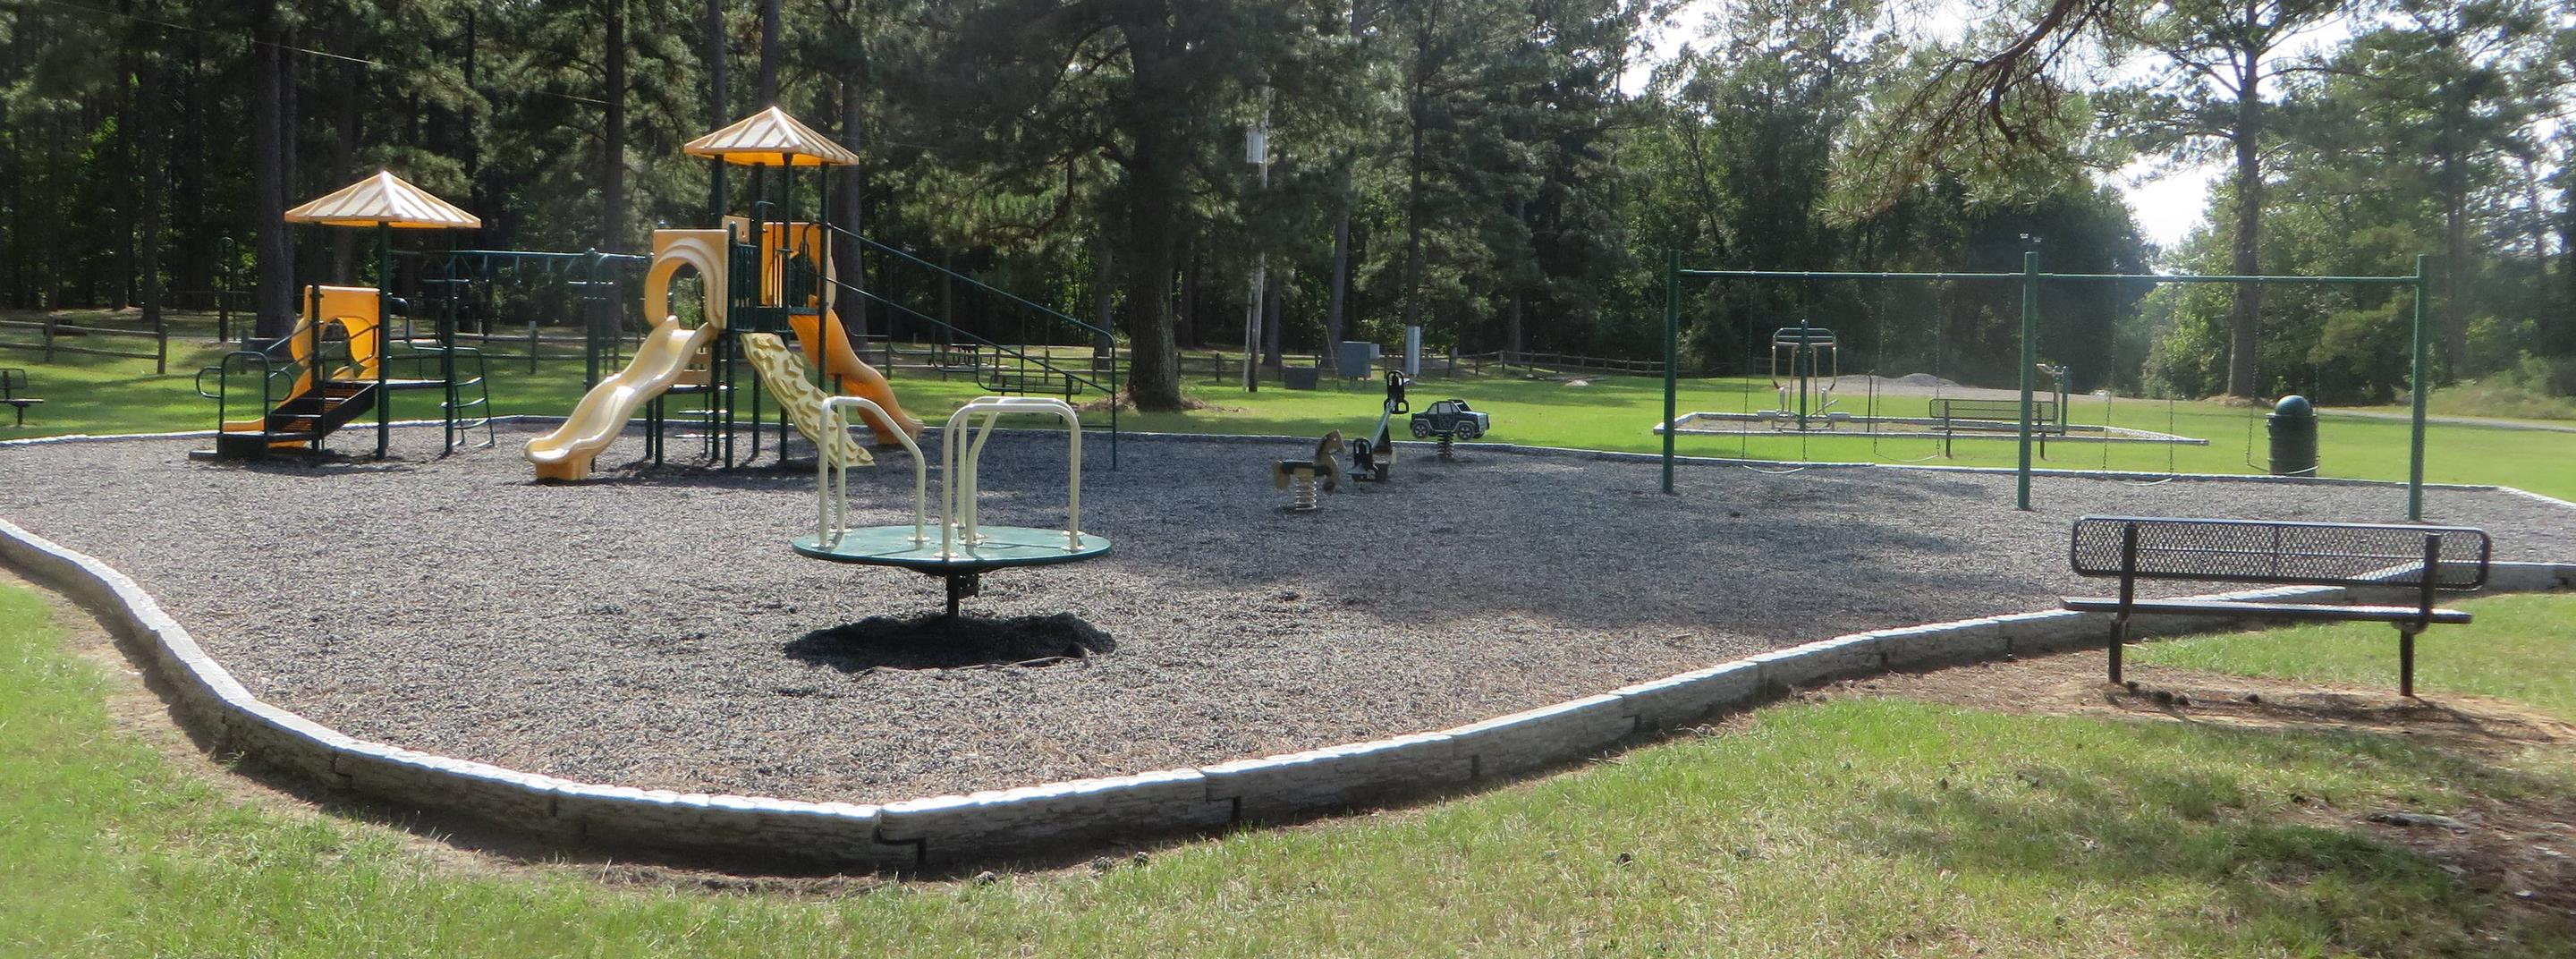 Playground and Exercise Equipment